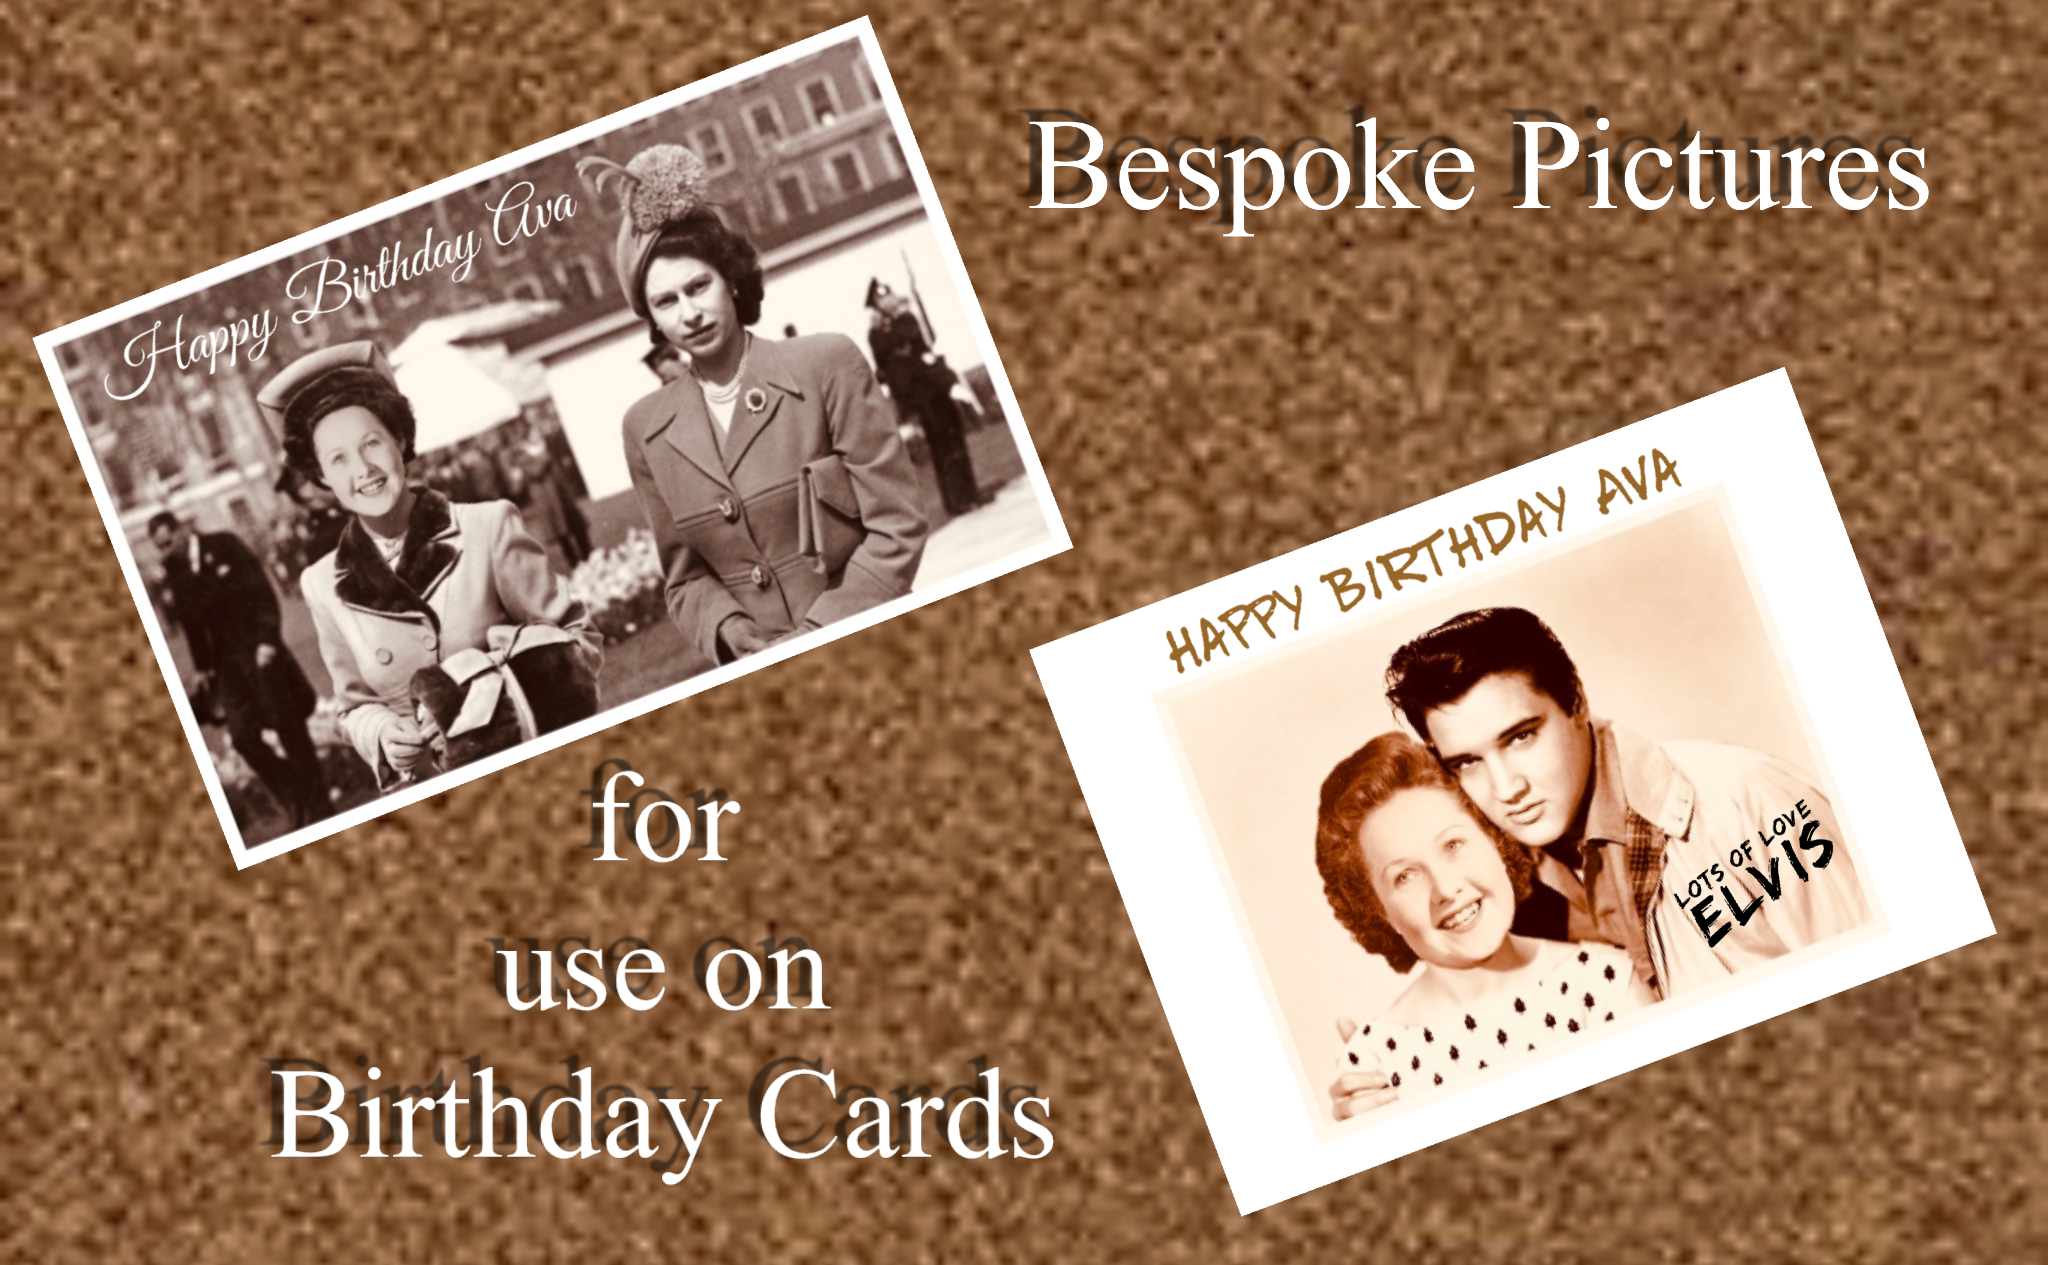 Novelty Pictures with a Celebrity for use on Cards.